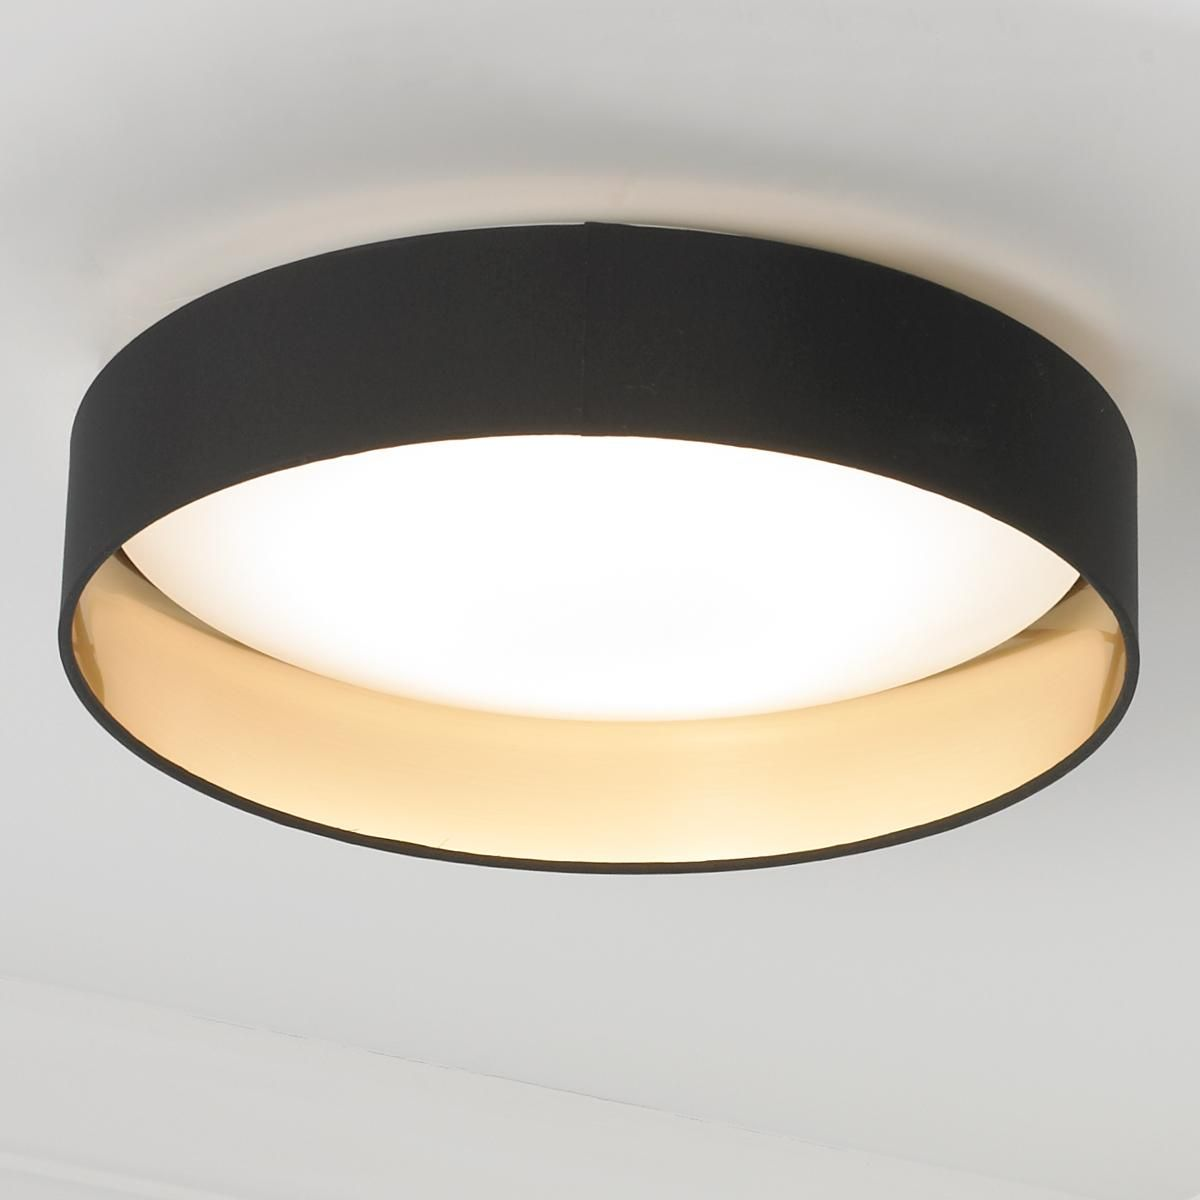 Modern ringed led ceiling light ceiling lights colour black and modern ringed led ceiling light available in 3 colors black and gold brown and aloadofball Choice Image